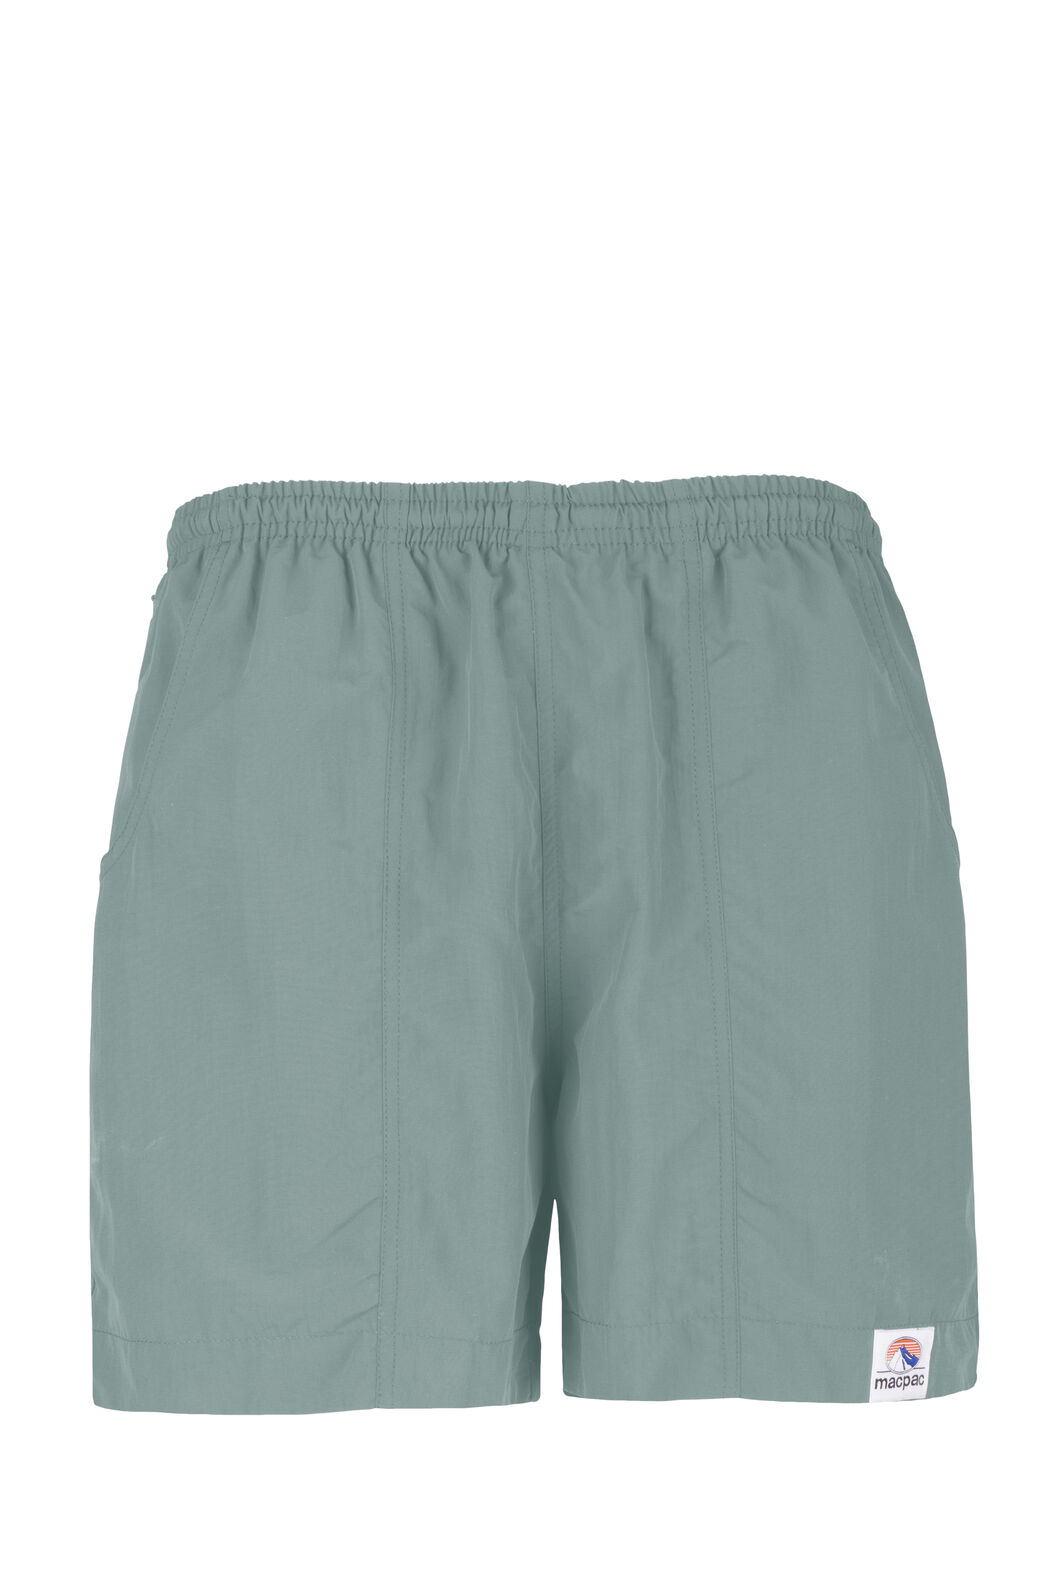 Macpac Winger Shorts - Men's, Stormy Sea, hi-res